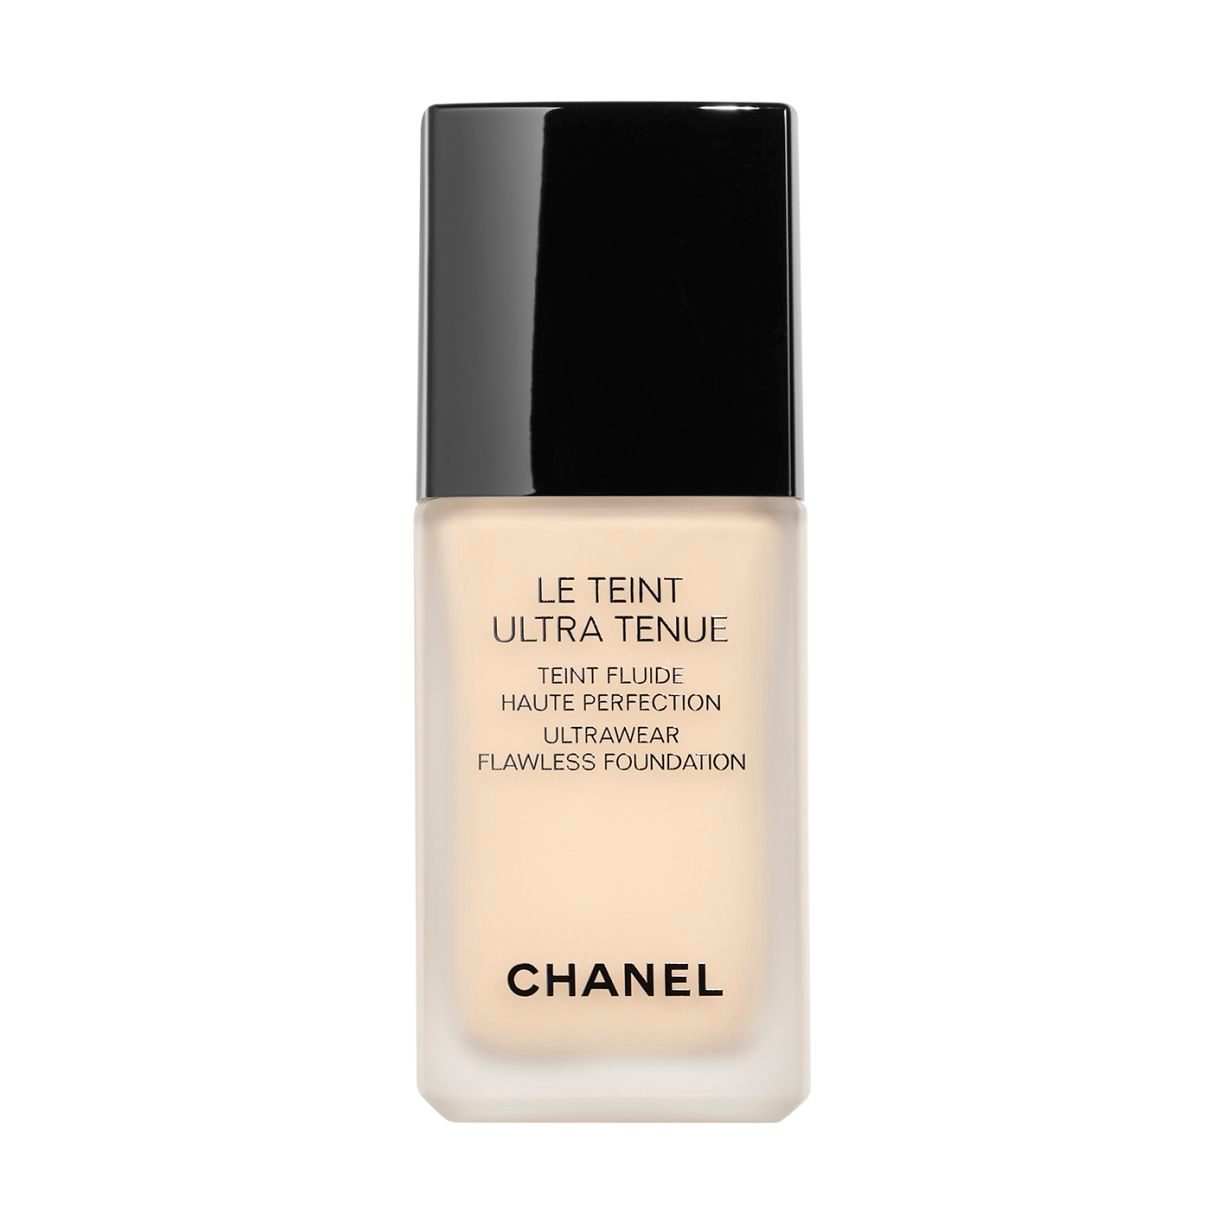 LE TEINT ULTRA TENUE ULTRAWEAR FLAWLESS FOUNDATION 10 BEIGE 30ML